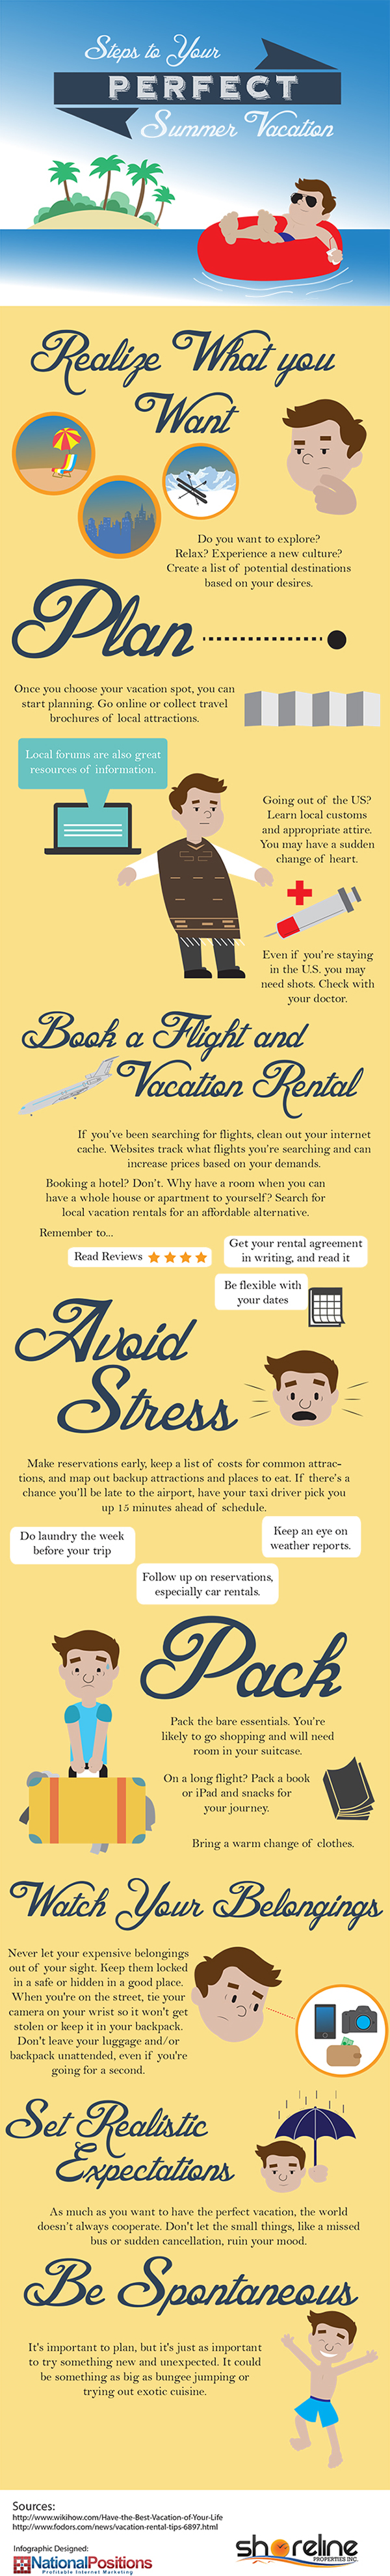 Steps to Your Perfect Vacation #Infographic | www.EatLaughPurr.com